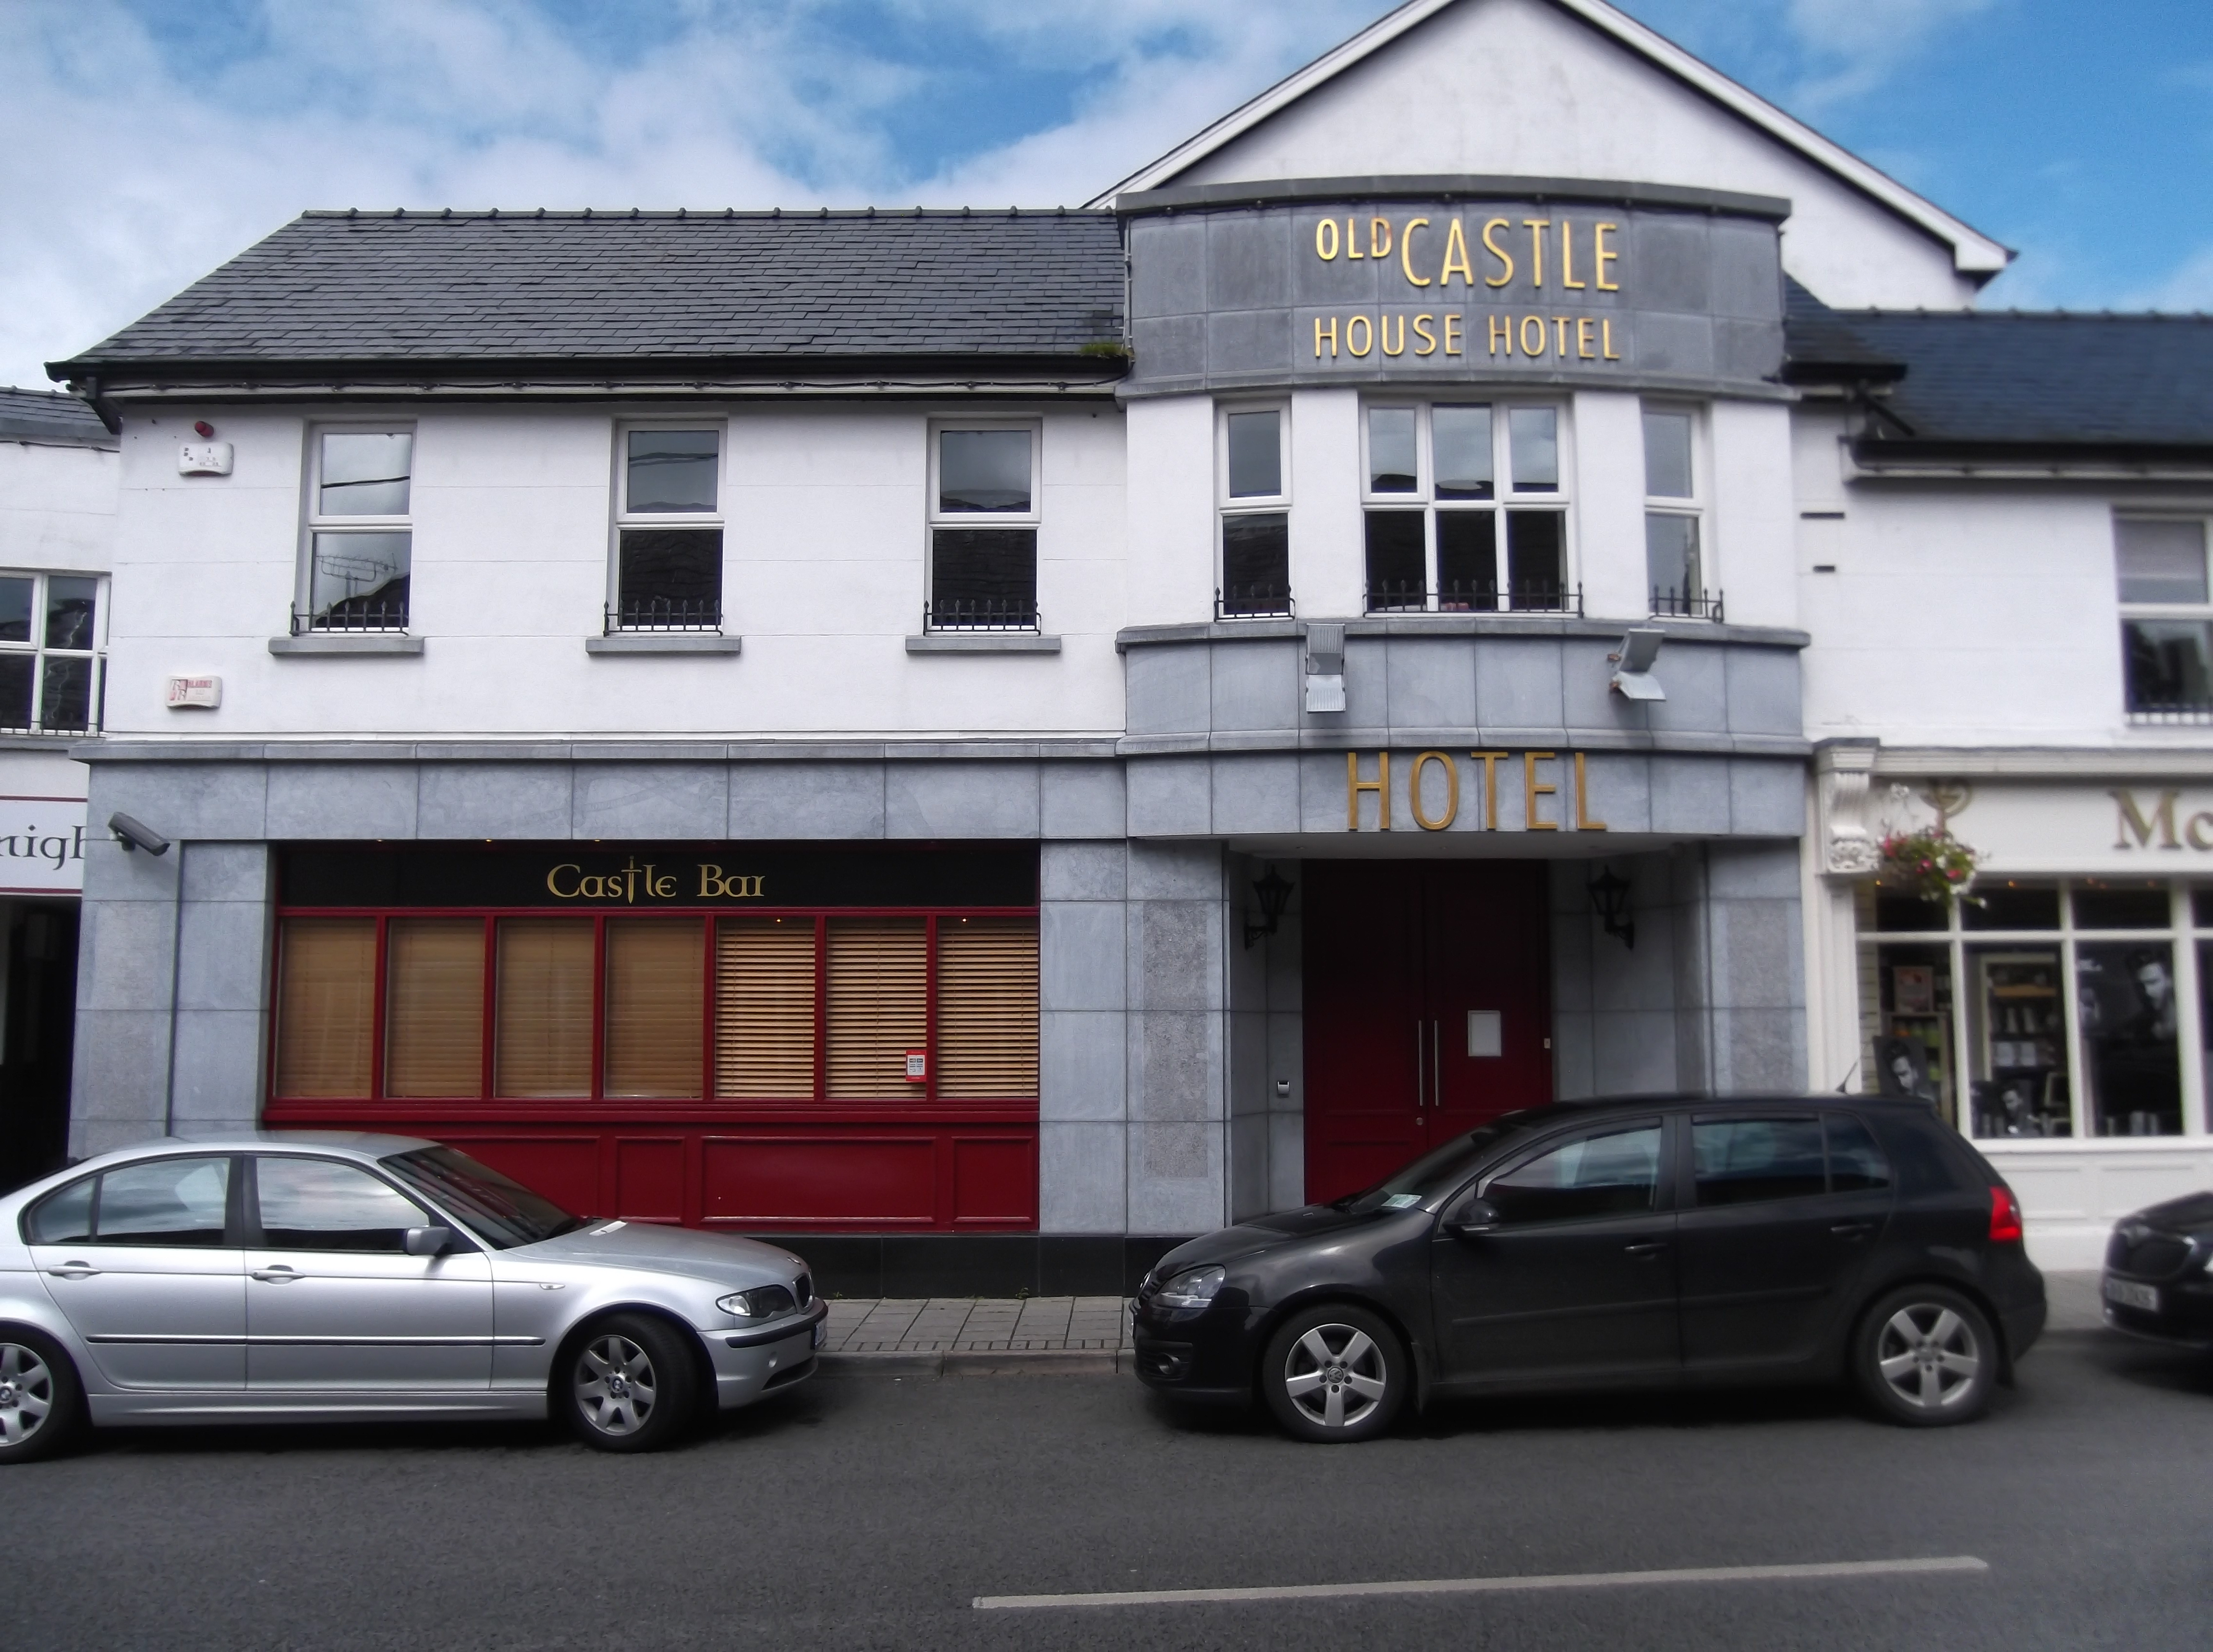 Old Castle House Hotel to Let